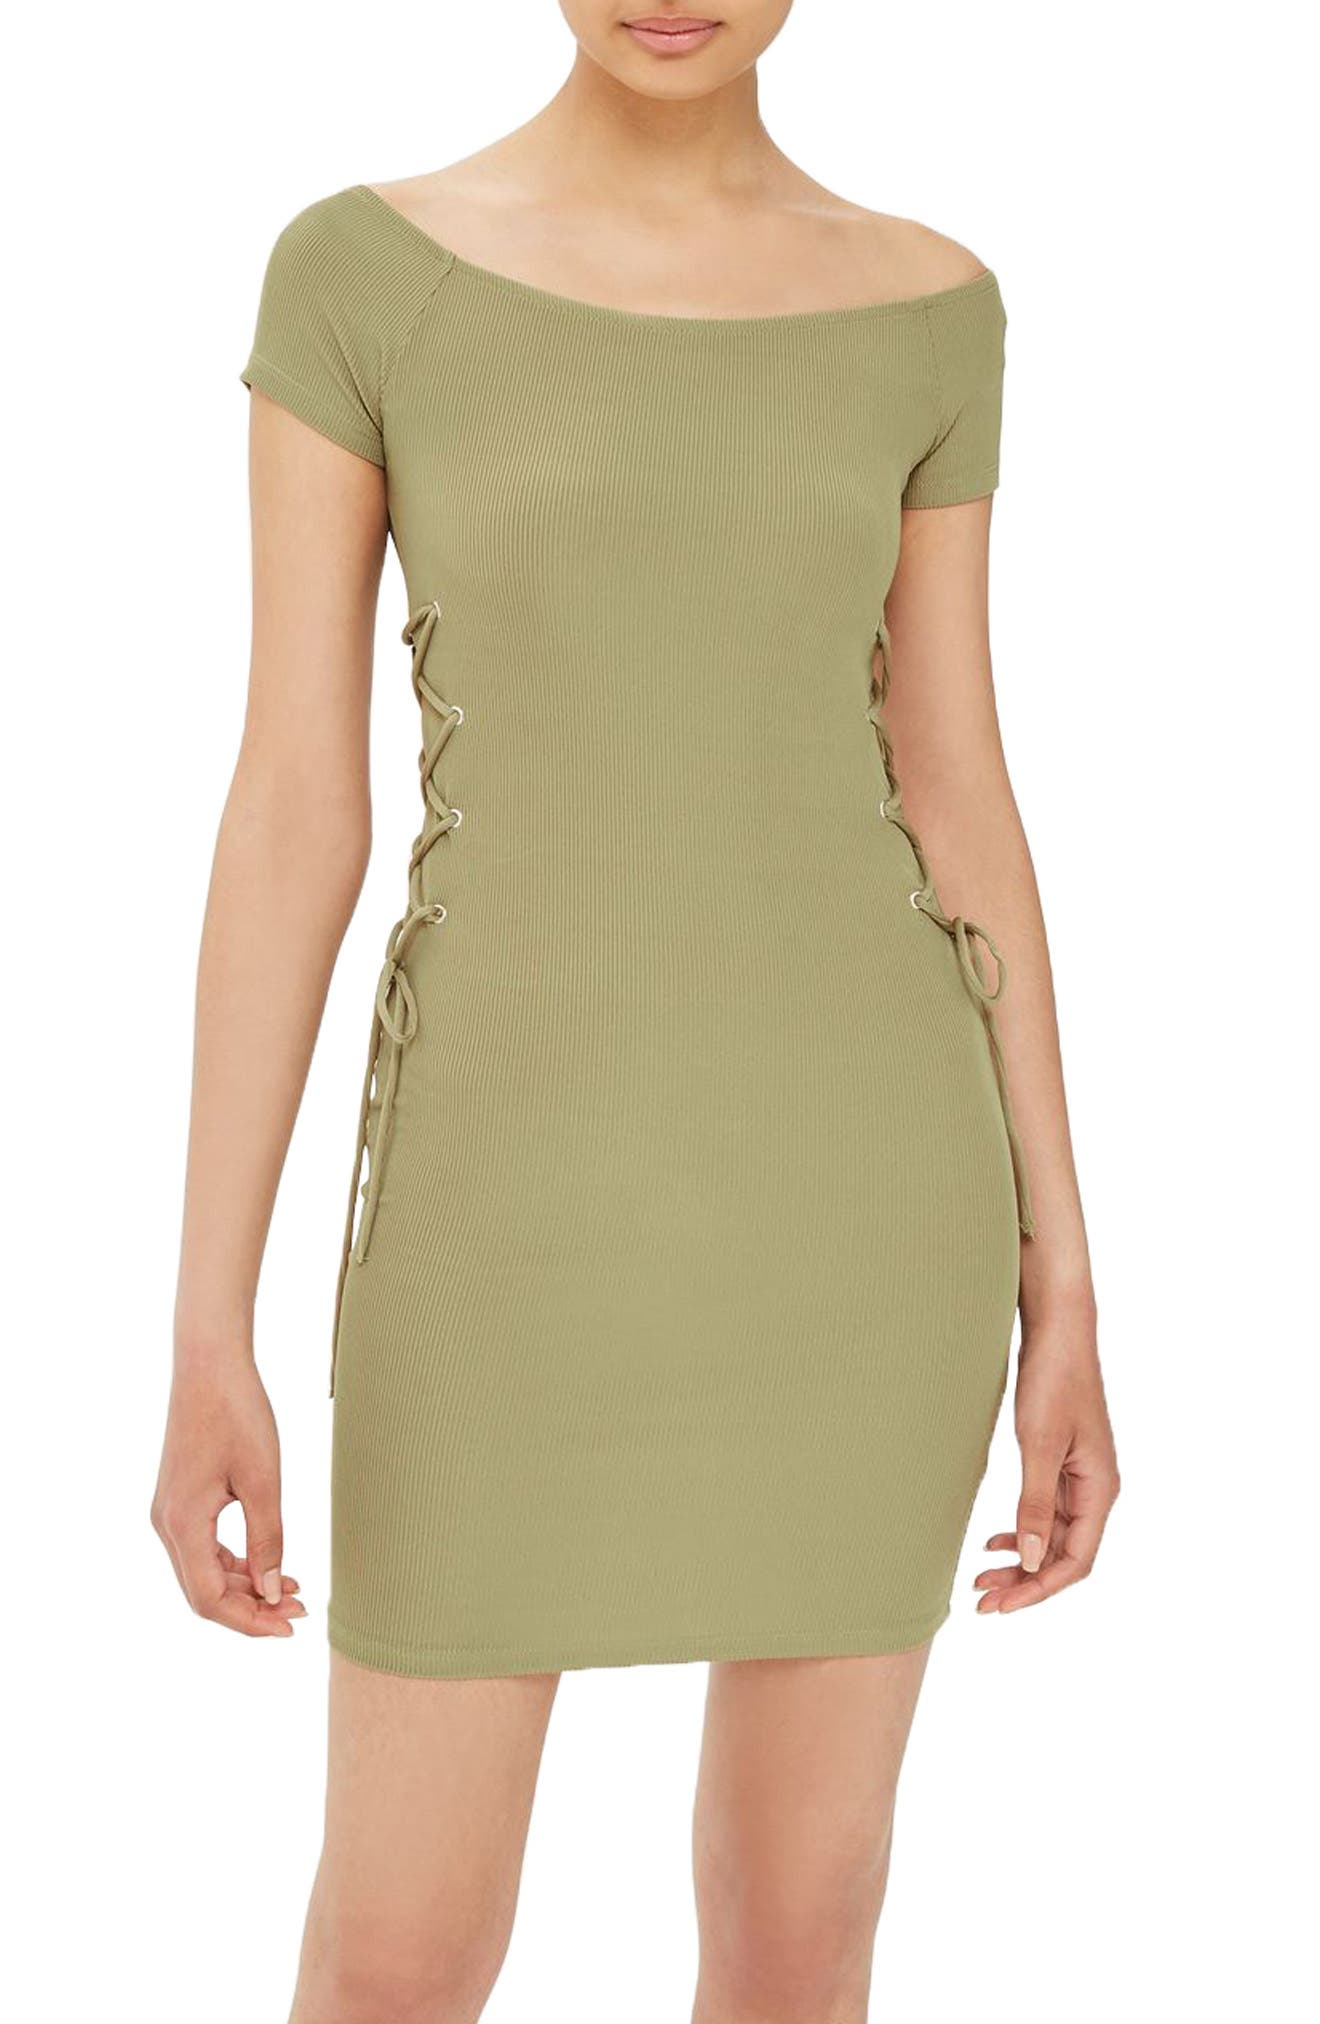 Topshop Lace-Up Side Body-Con Dress